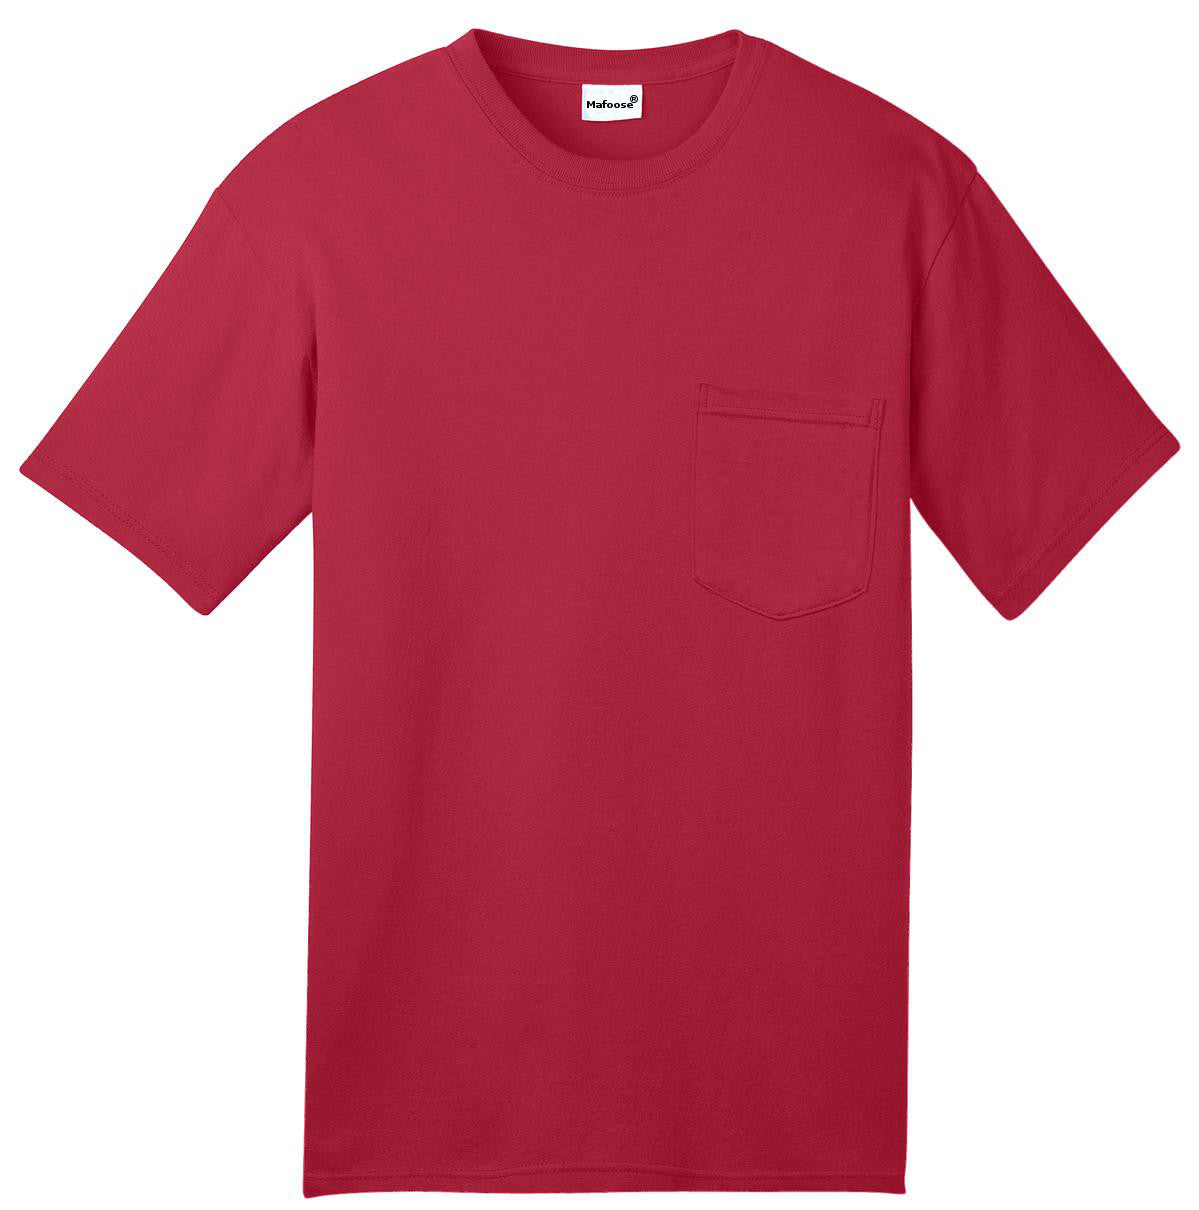 Mafoose Men's All American Tee Shirt with Pocket Red-Front